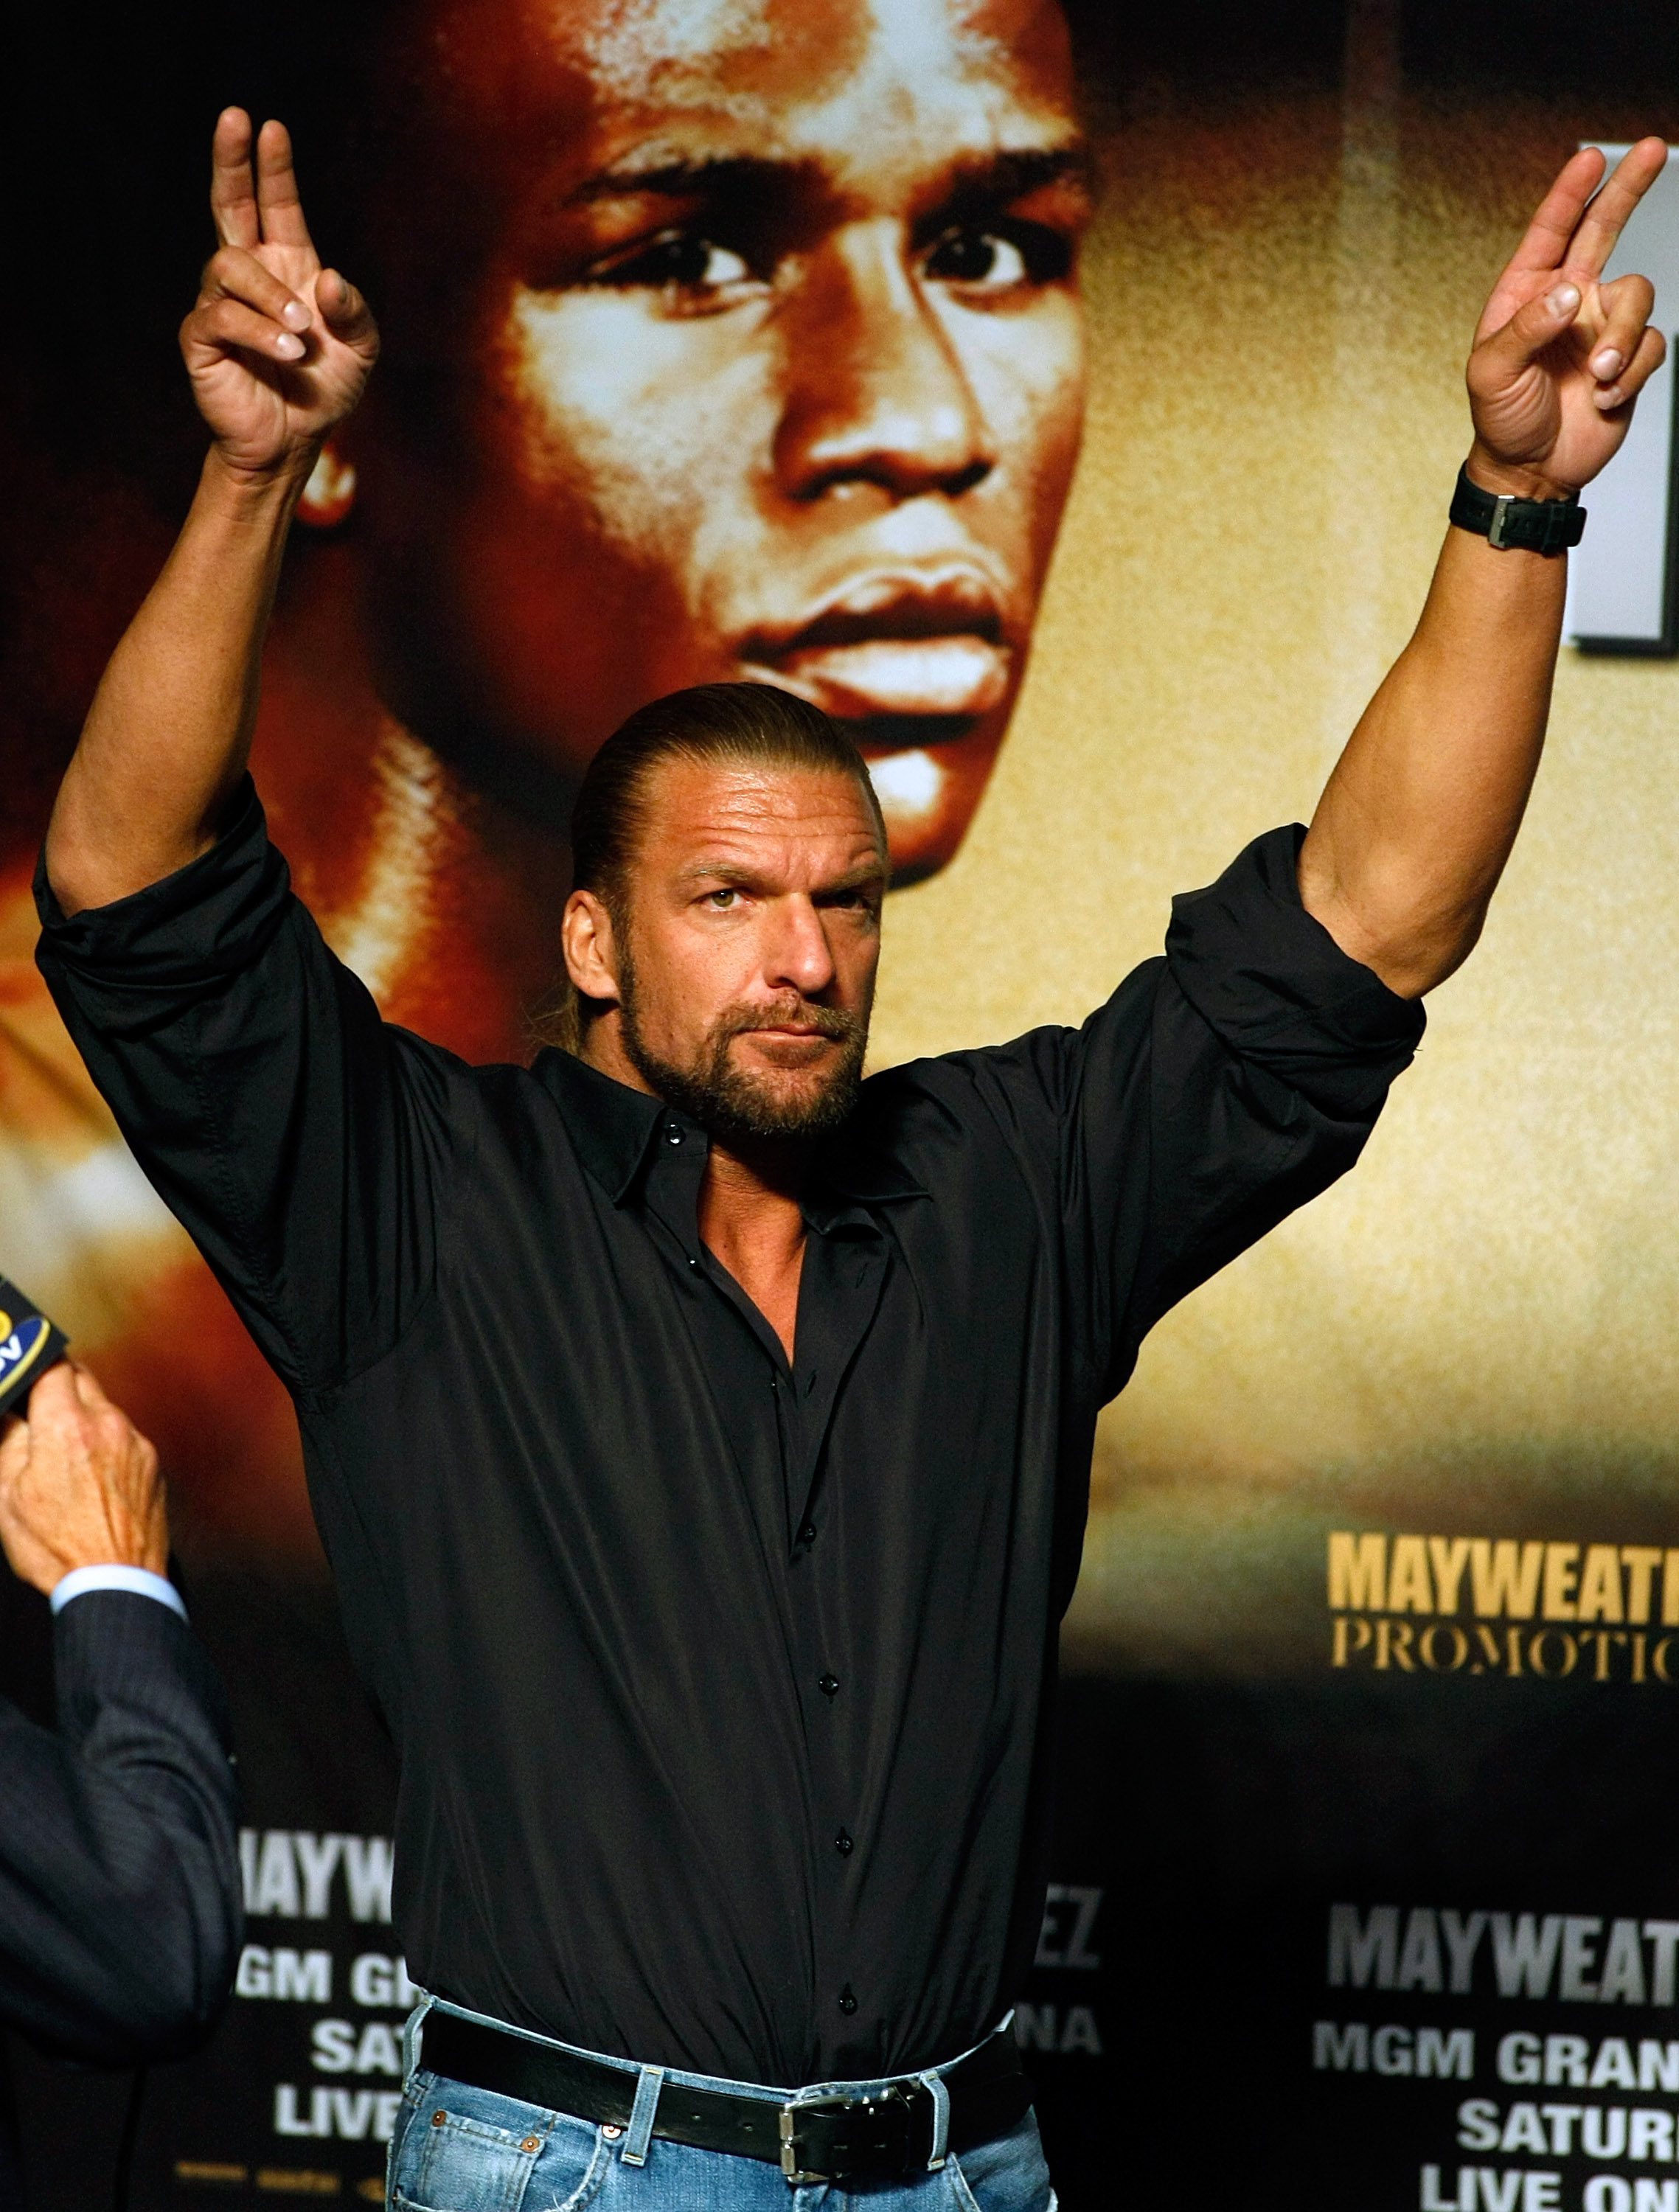 LAS VEGAS - SEPTEMBER 18:  WWE wrestler Triple H attends the official weigh-in for boxers Floyd Mayweather Jr. and Juan Manuel Marquez at the MGM Grand Garden Arena September 18, 2009 in Las Vegas, Nevada. The two will fight at the MGM on September 19.  (